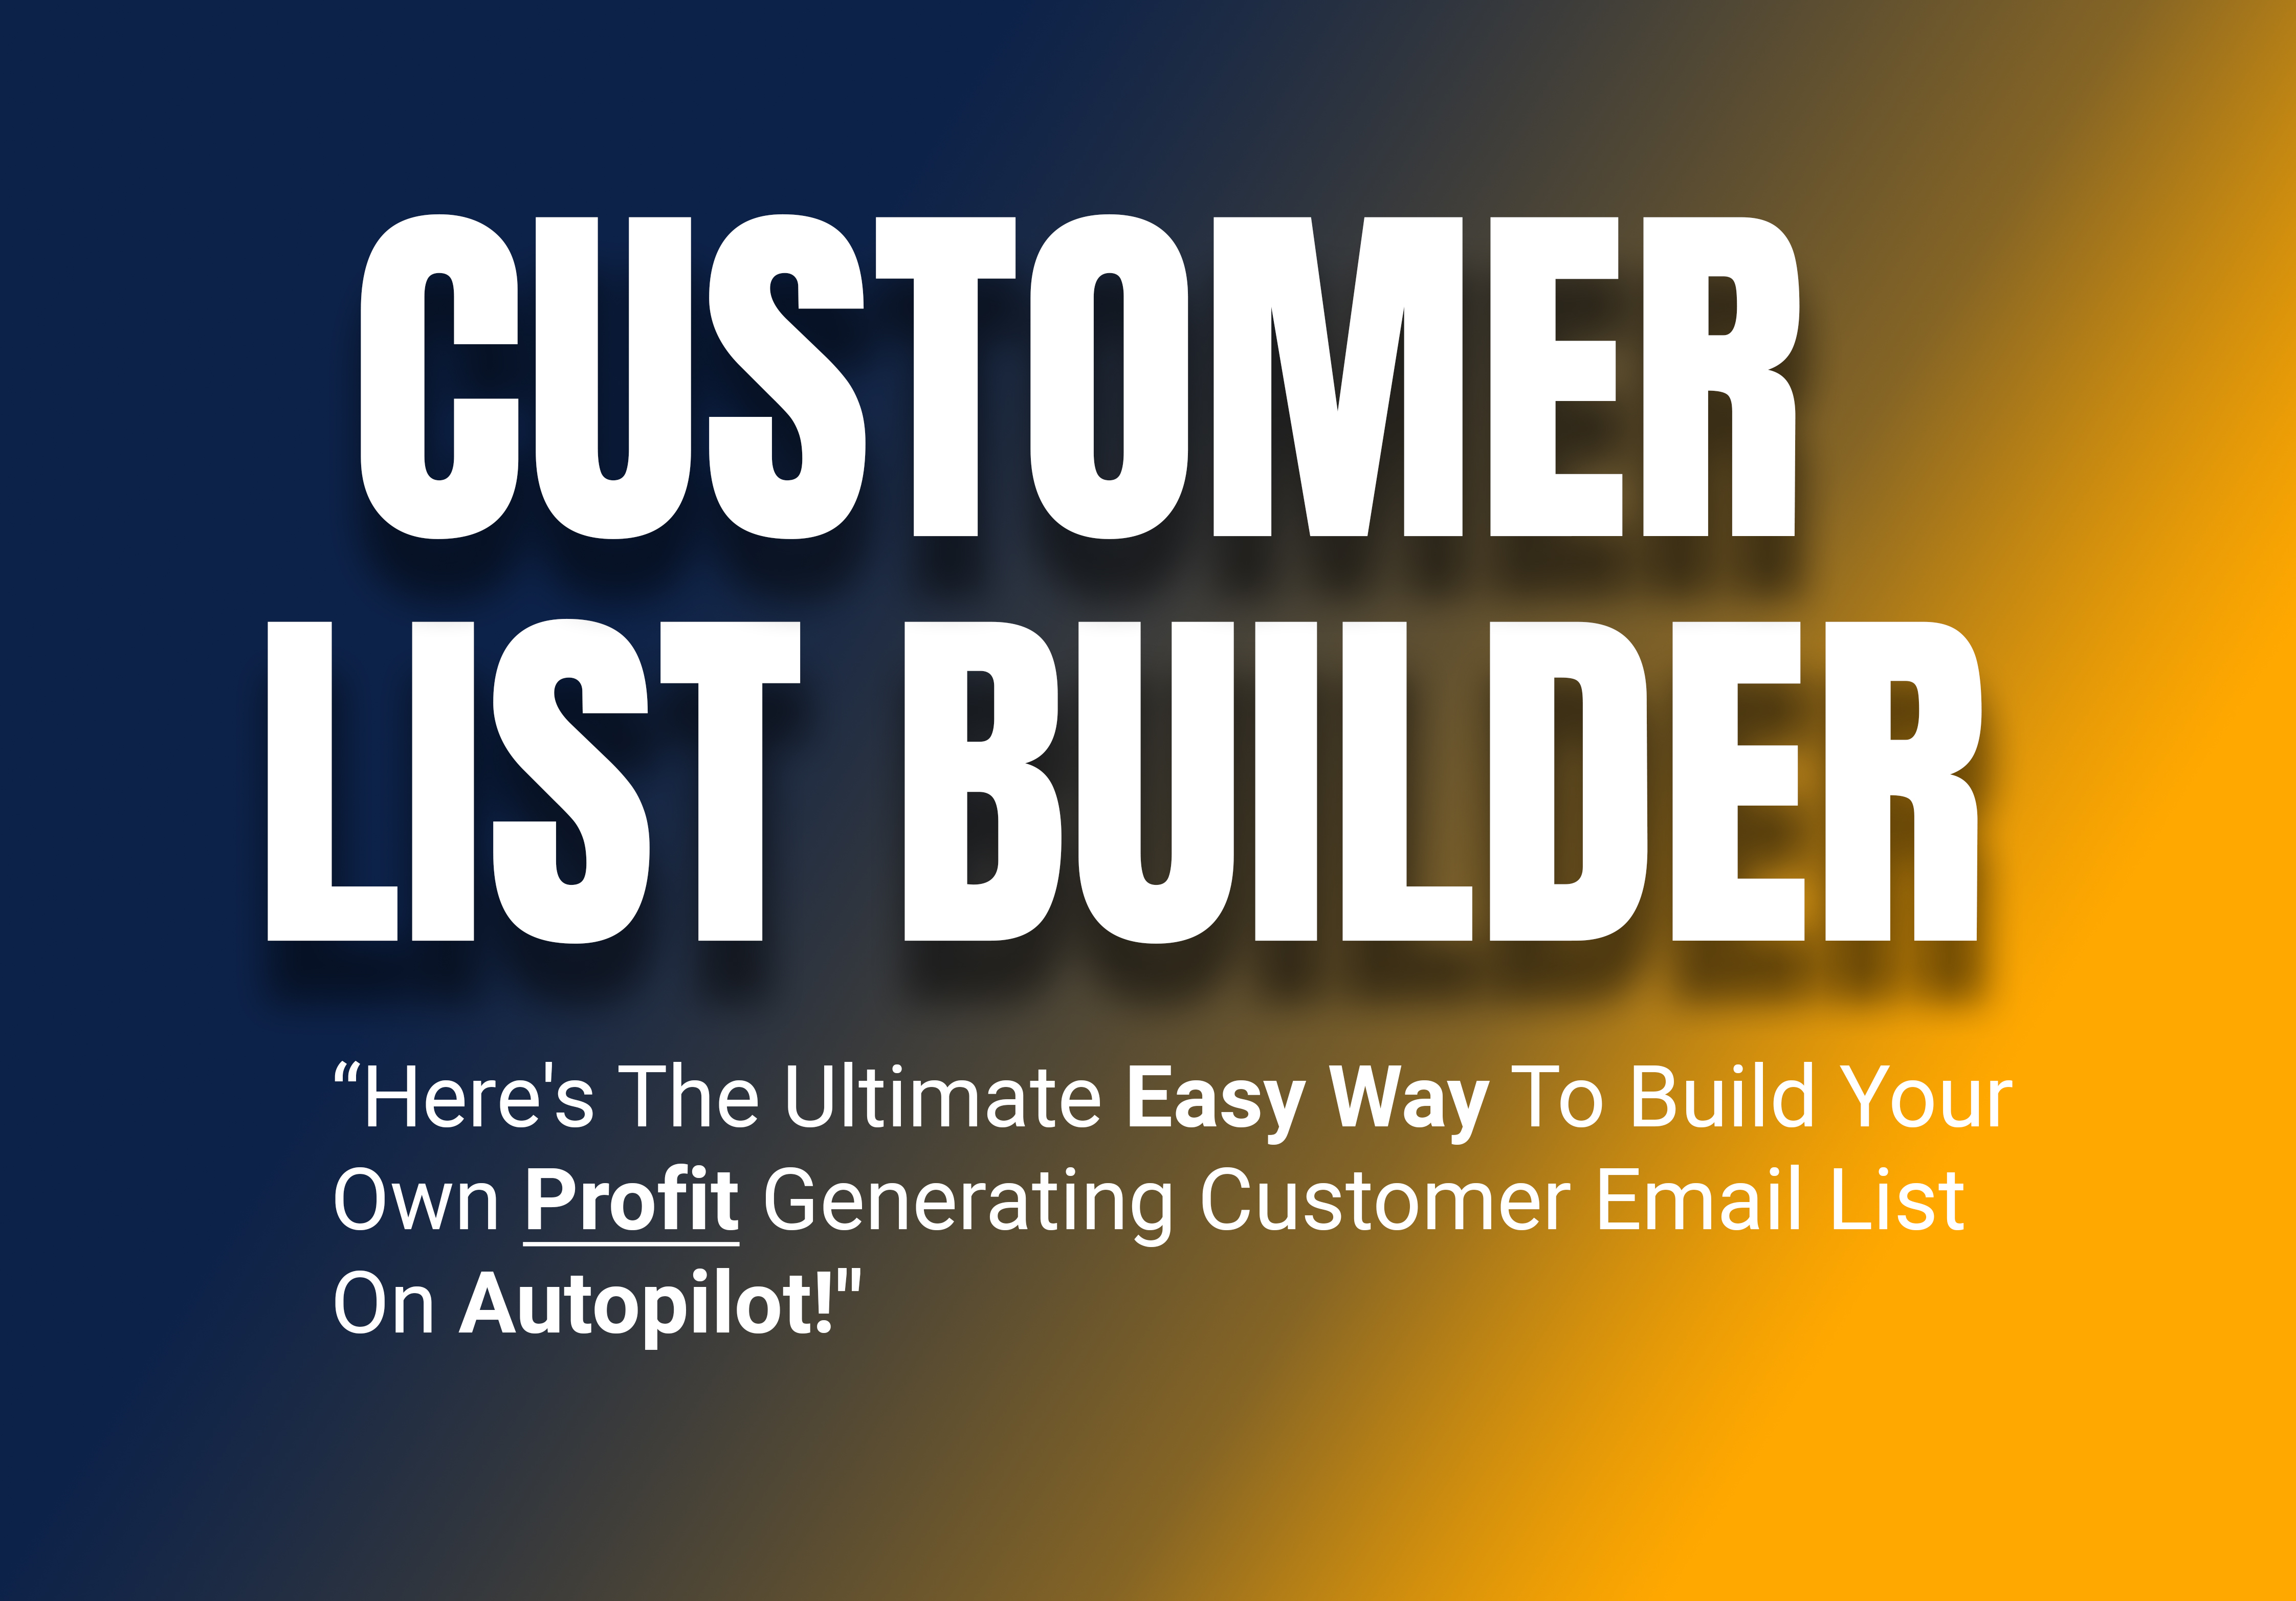 Here's The Ultimate Easy Way To Build Your Own Profit Generating Customer Email List On Autopilot